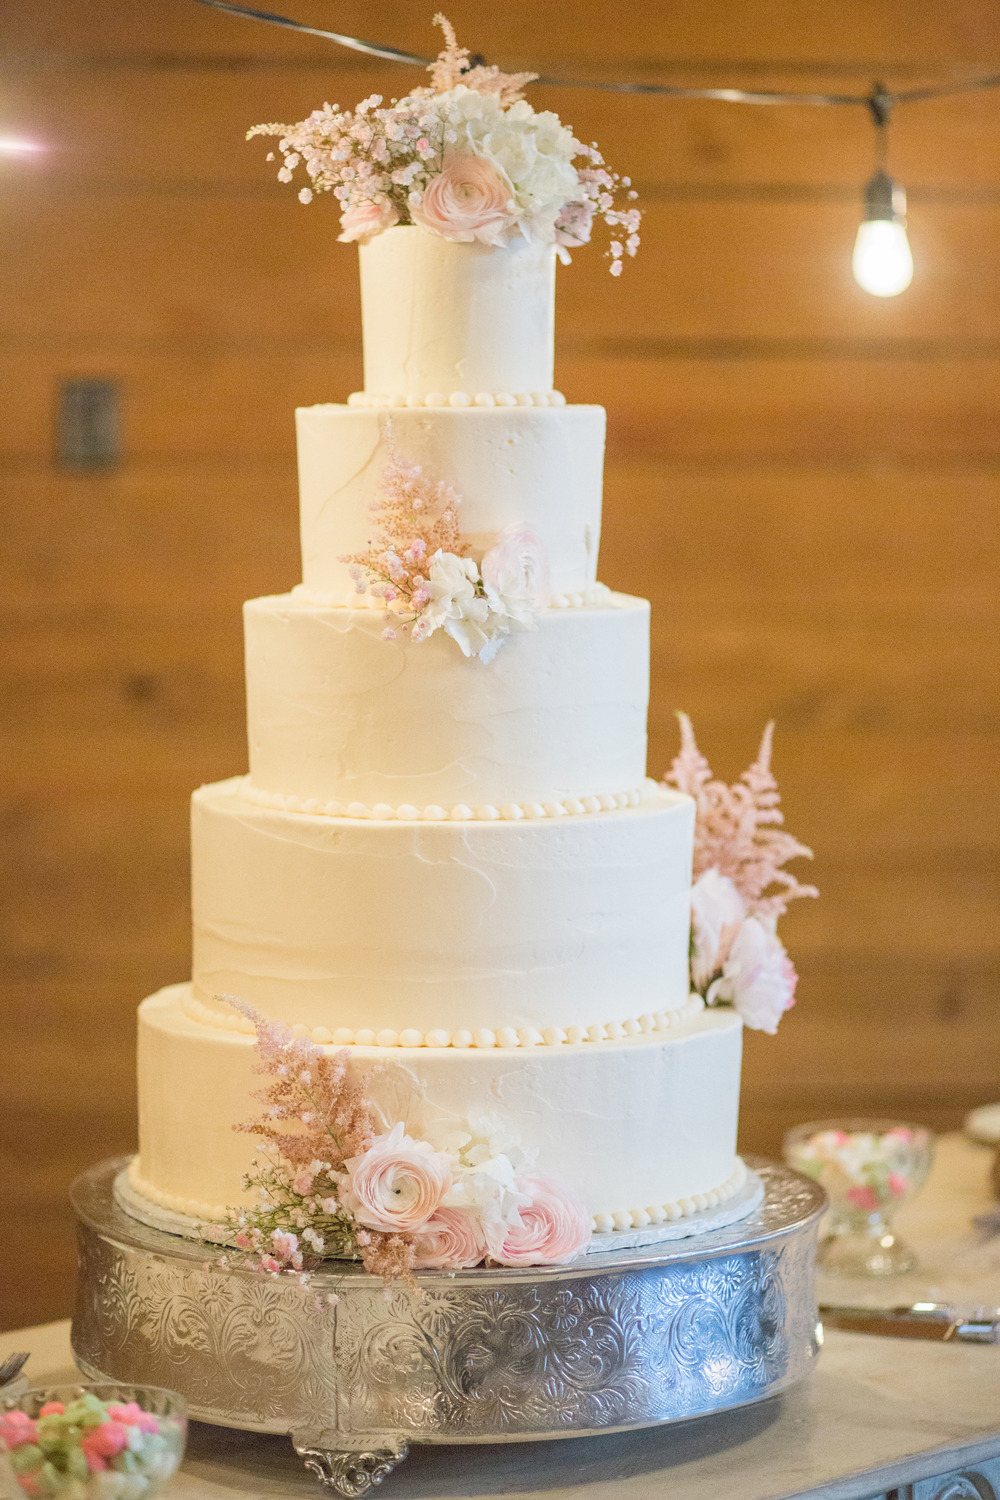 custom-wedding-cake-white-texture-pearl-border-sugarbeesweets.jpg